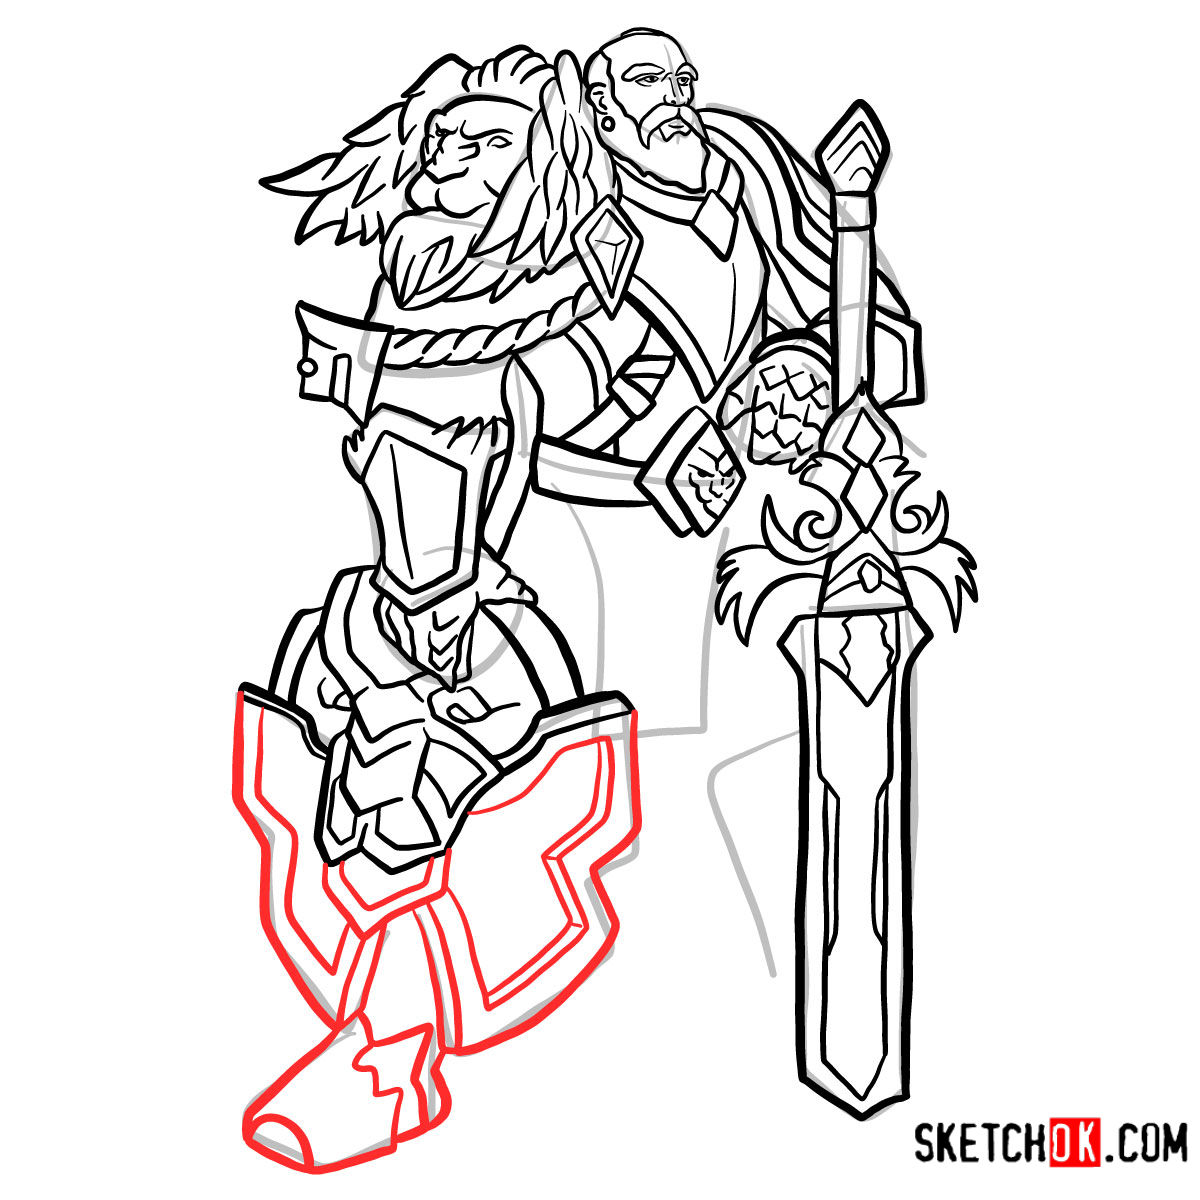 How to draw Lord Anduin Lothar | World of Warcraft - step 15